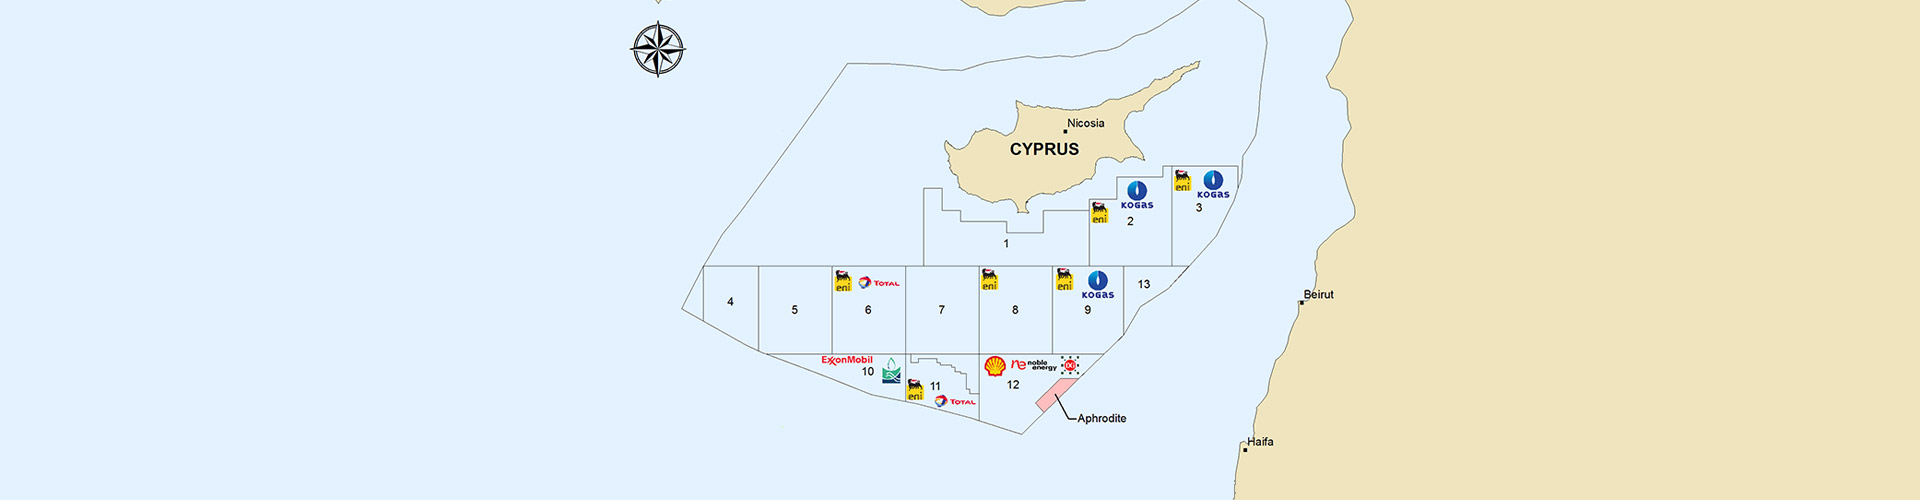 Cyprus: Block 7 to be given to French Total